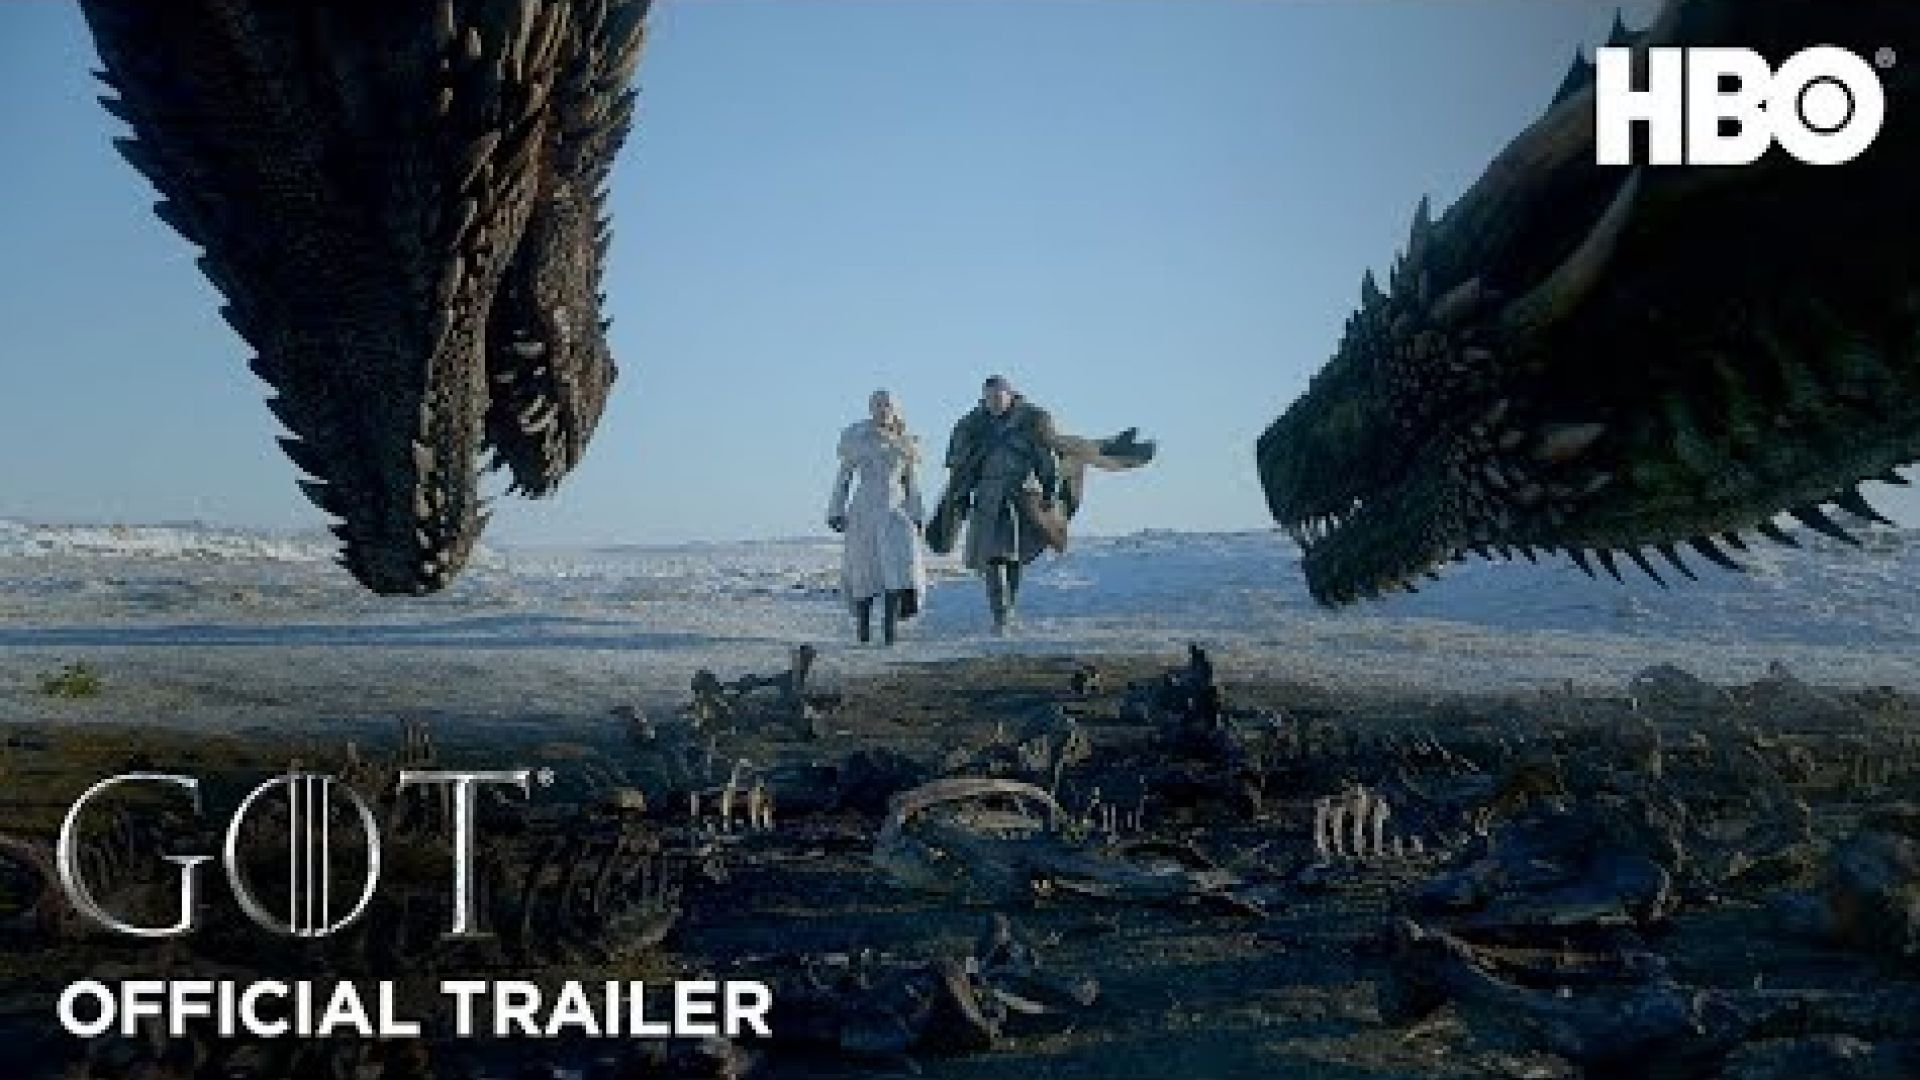 Game of Thrones Season 8 Official Trailer